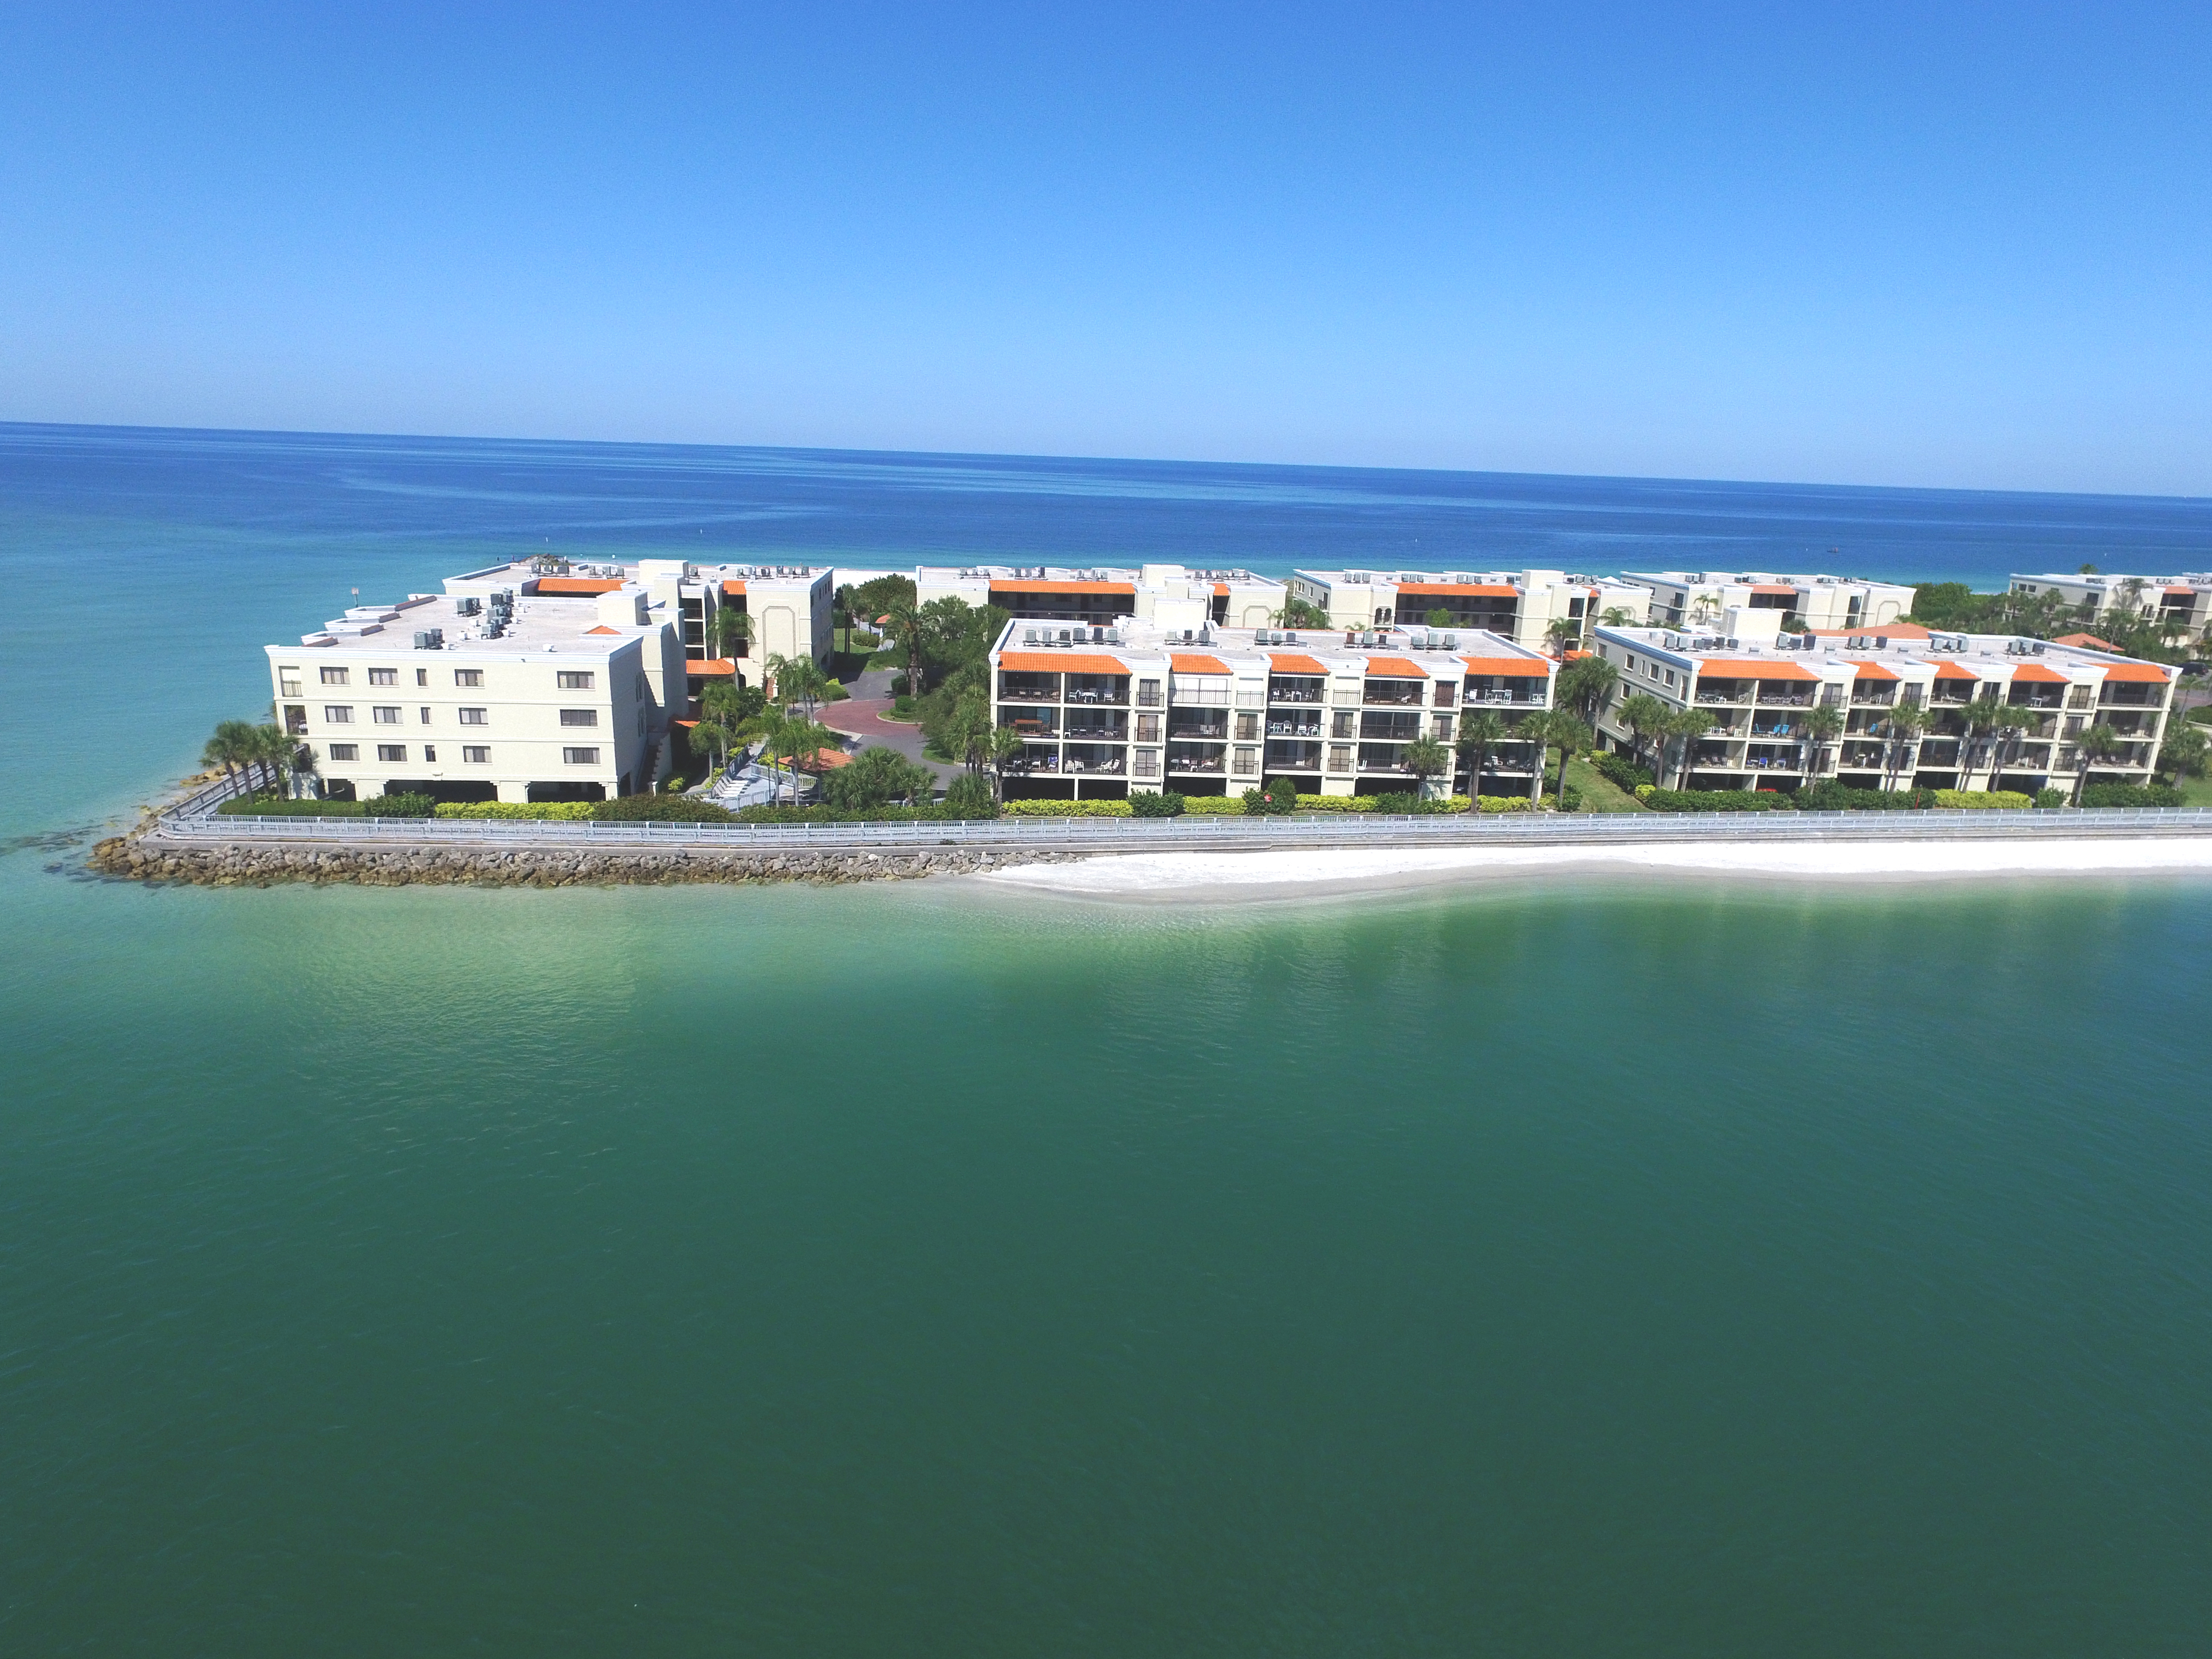 RESORT LIVING NEVER GETS OLD With A Unique Winding Boardwalk That Surrounds The Property Endless Seascapes Glorious Sunsets Cool Ocean Breezes